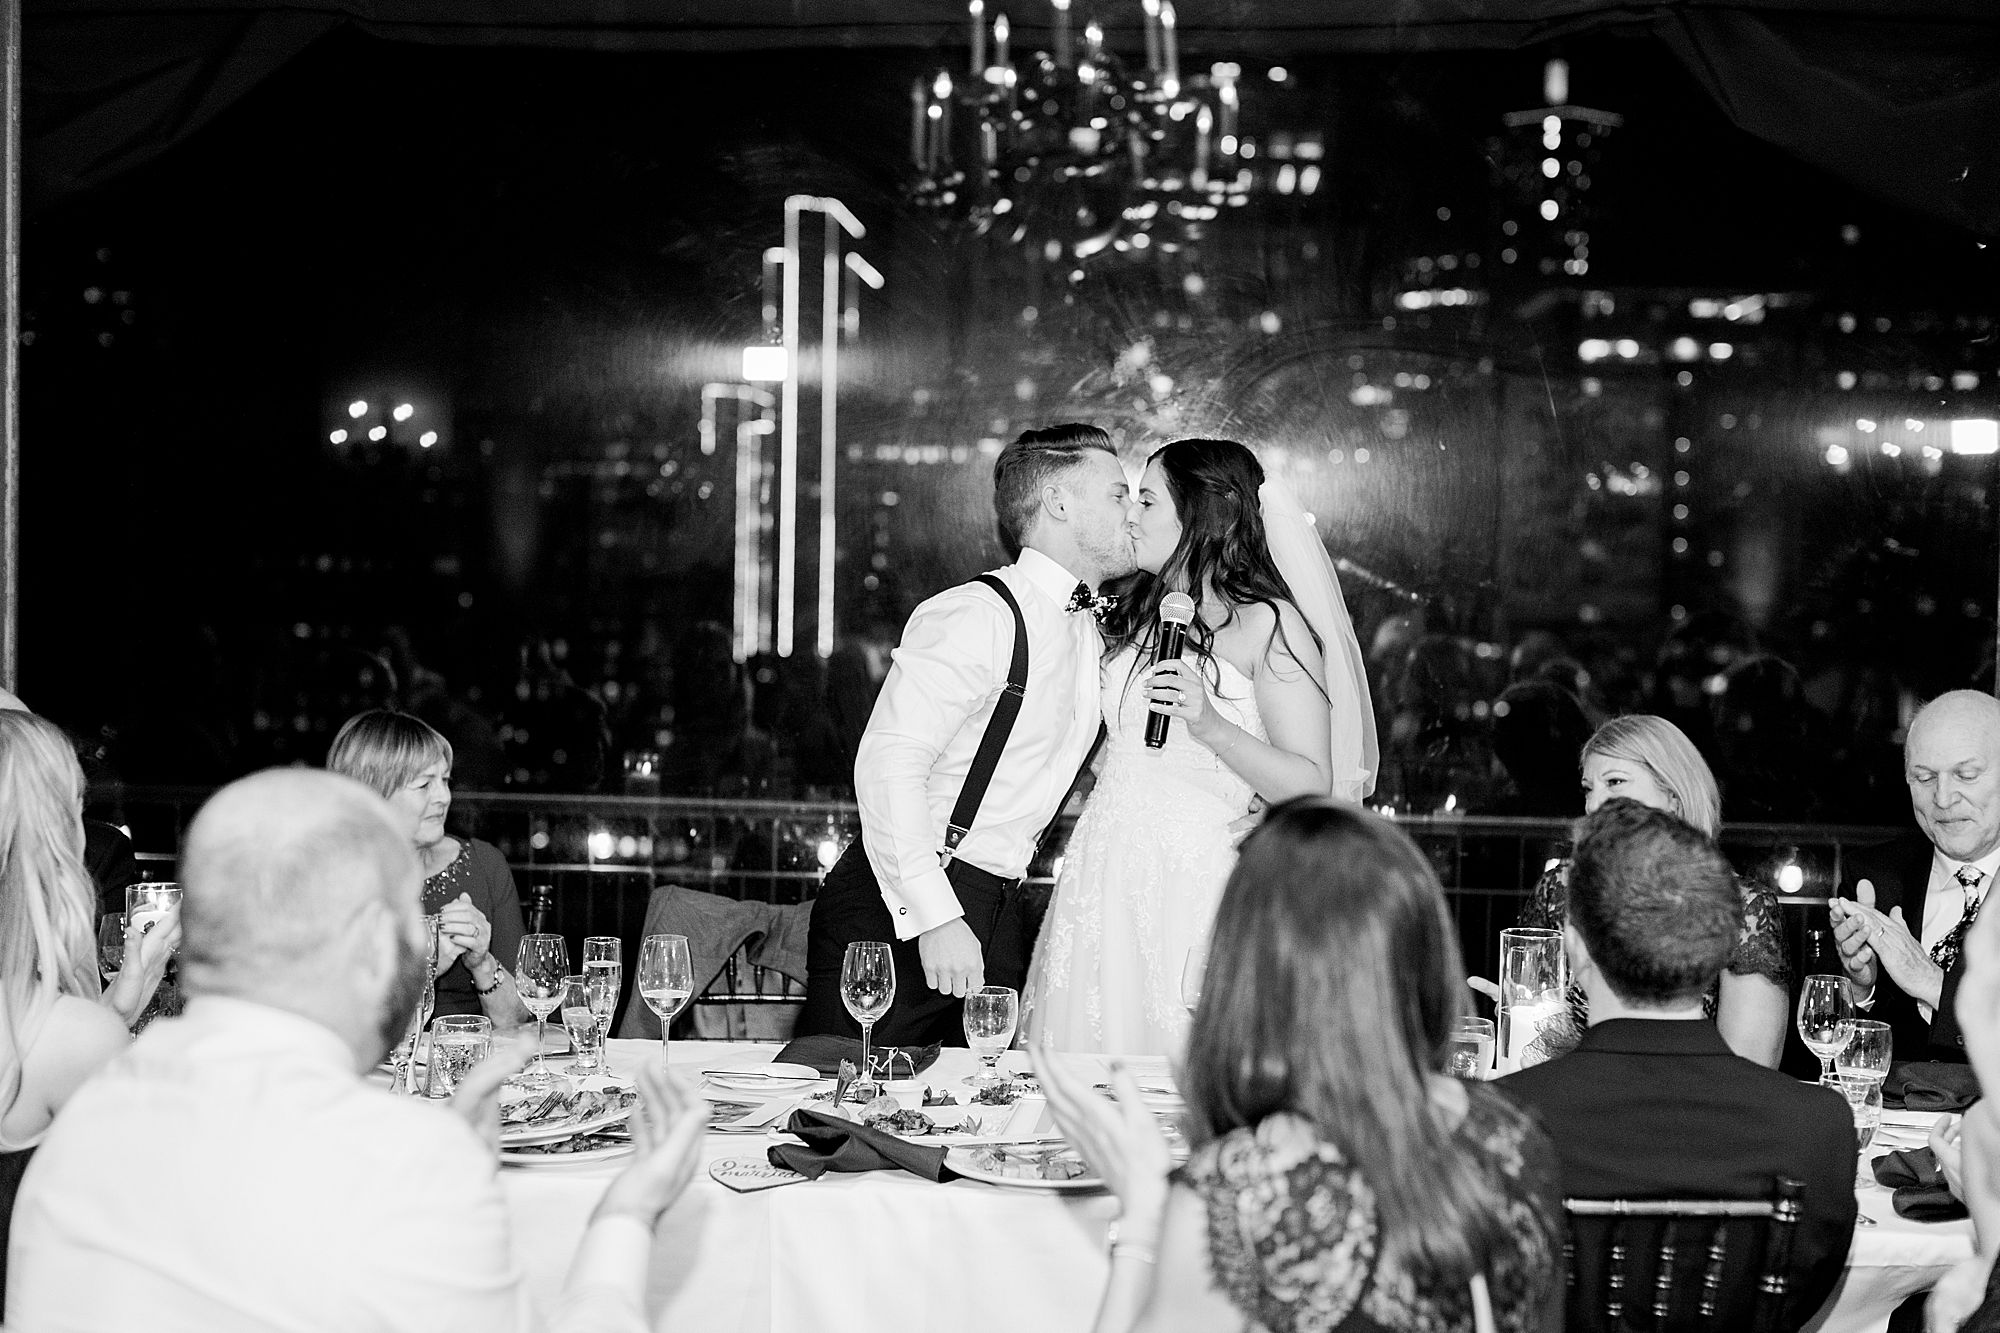 University Club Wedding in San Francisco - Cortney and Jon - San Francisco Wedding - Ashley Baumgartner - SF Wedding Photographer_0109.jpg